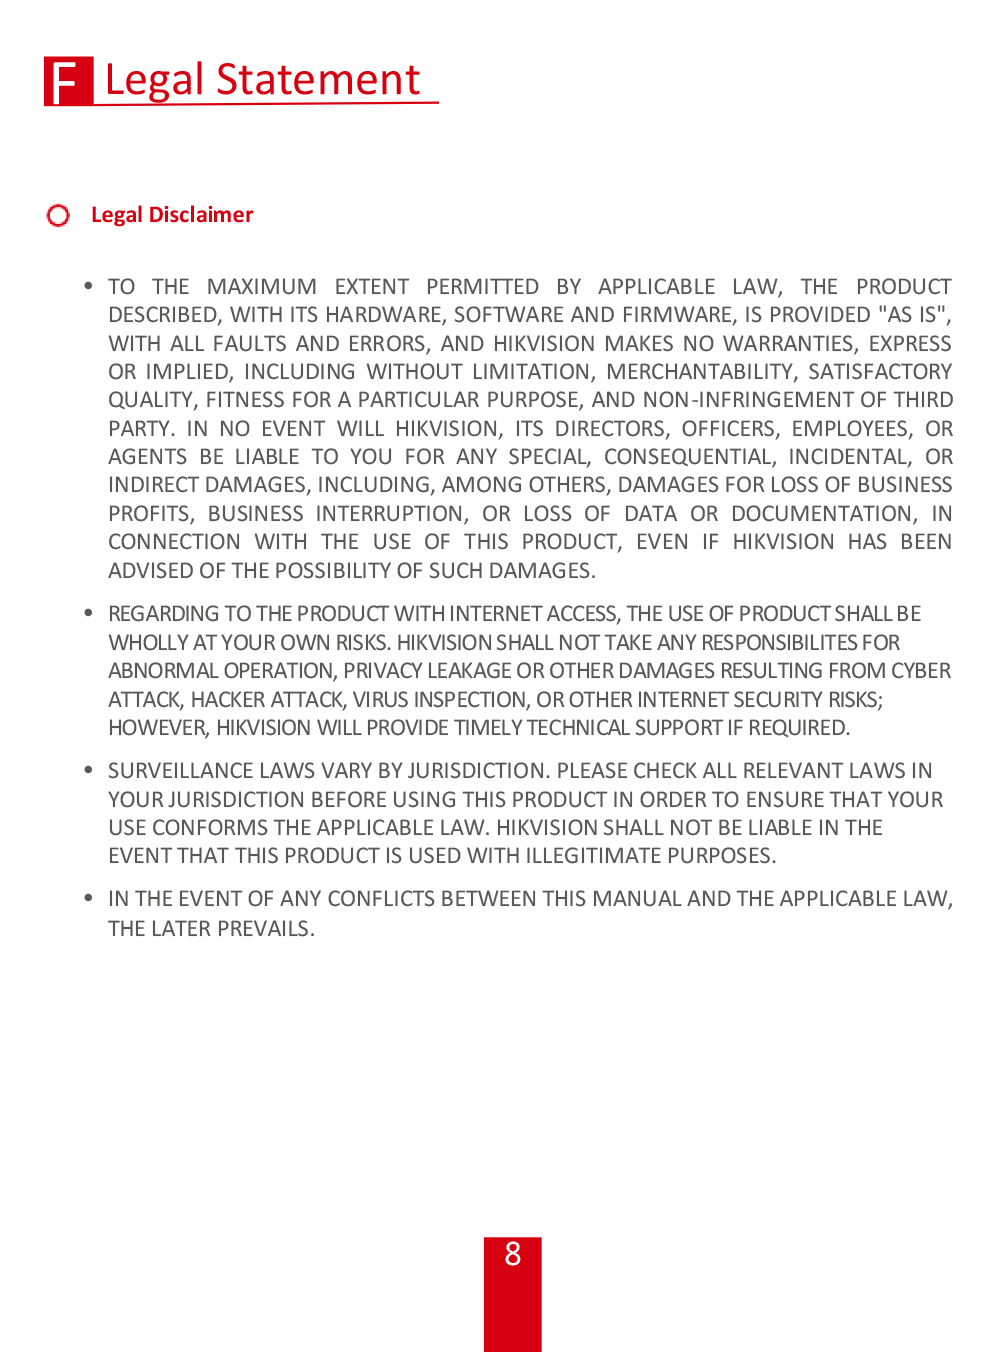 User-Manual-of-Hikvision-Personal-Private-NAS-H90-20190717-9